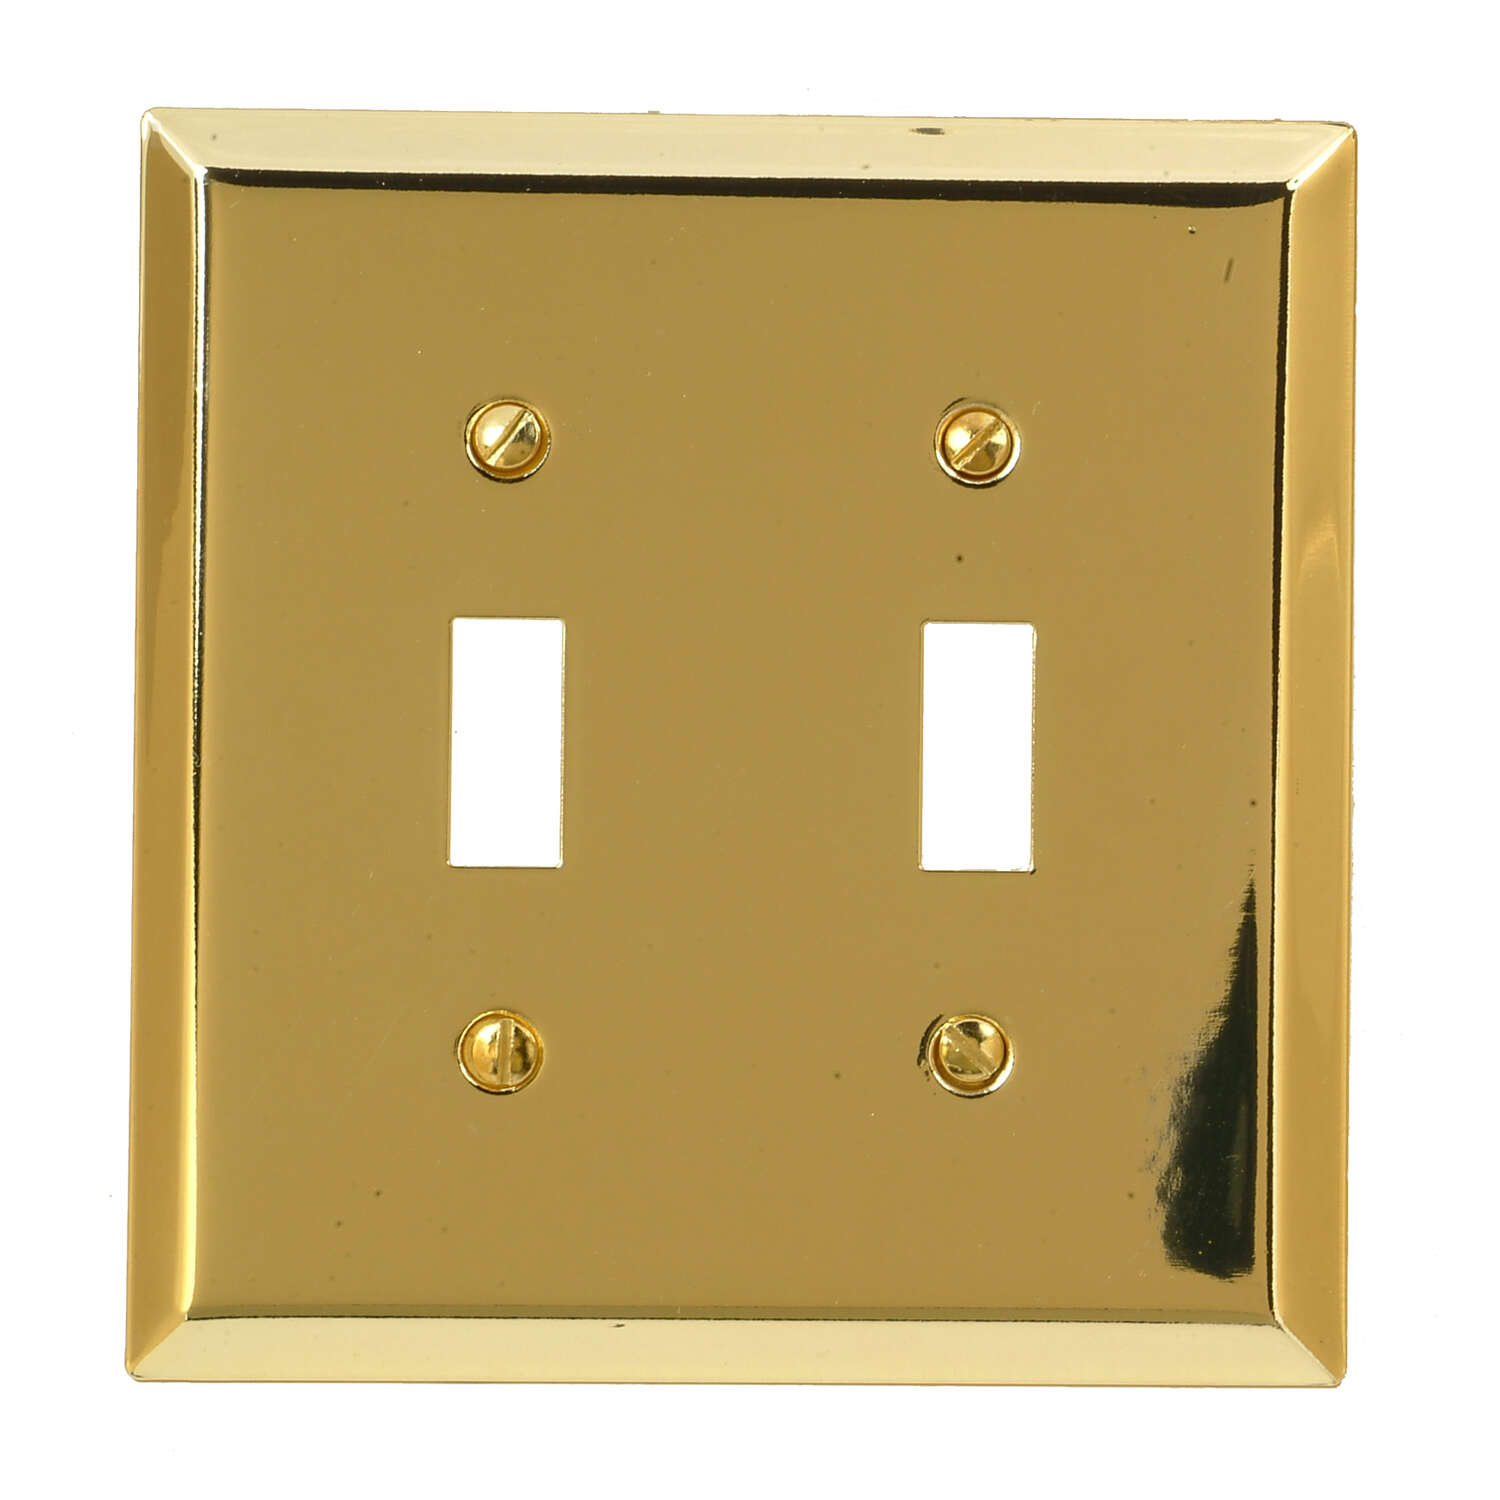 Amerelle Century Polished Brass Brass 2 gang Stamped Steel Toggle Wall Plate 1 pk